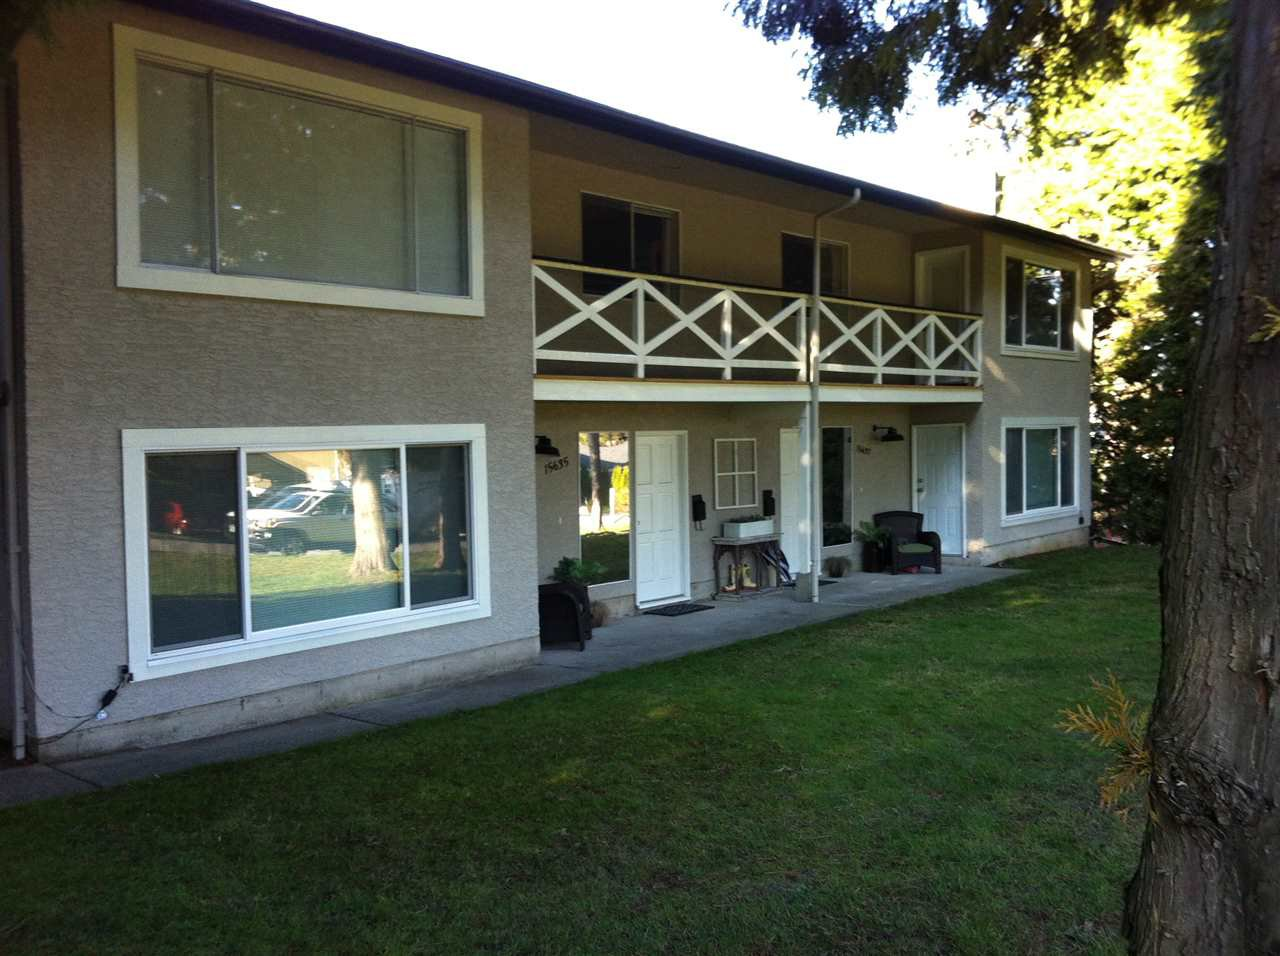 Main Photo: 15635 ASTER ROAD in Surrey: King George Corridor Multifamily for sale (South Surrey White Rock)  : MLS®# R2317140